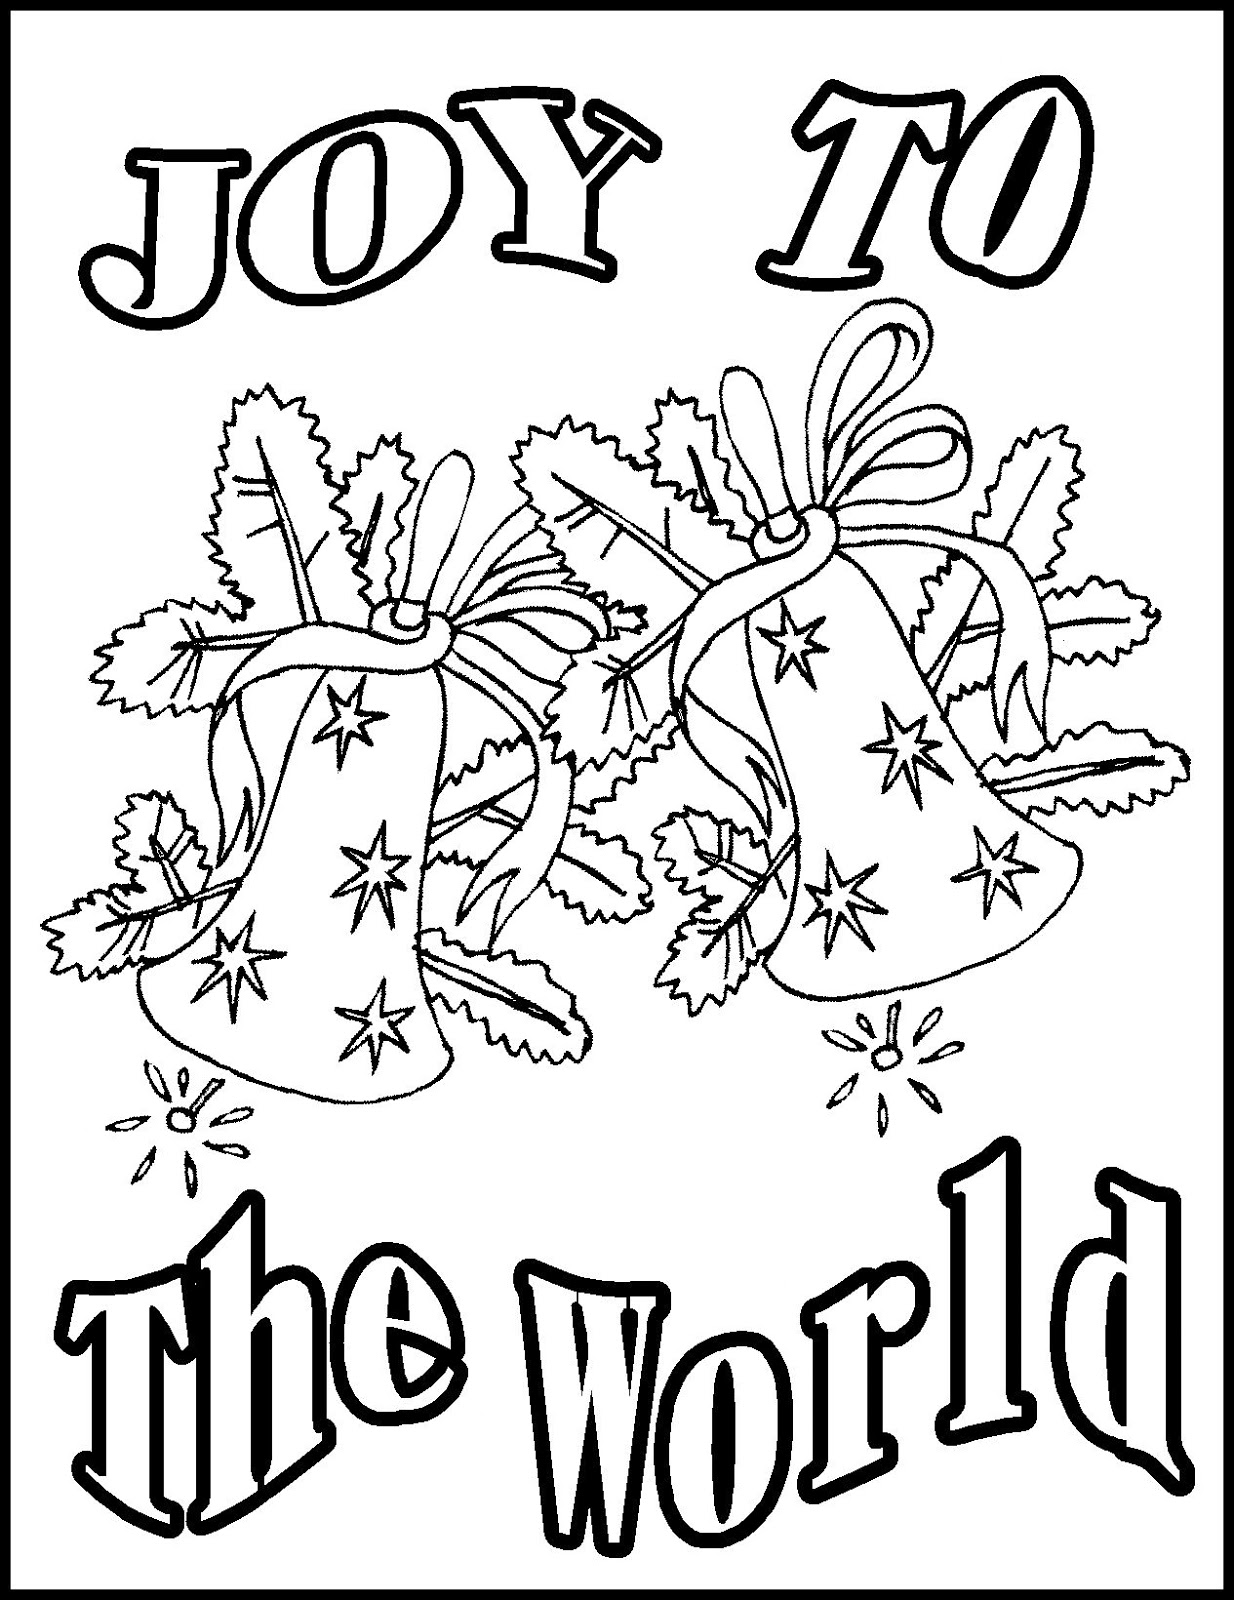 christmas religious coloring pages the best free religious coloring page images download religious coloring pages christmas